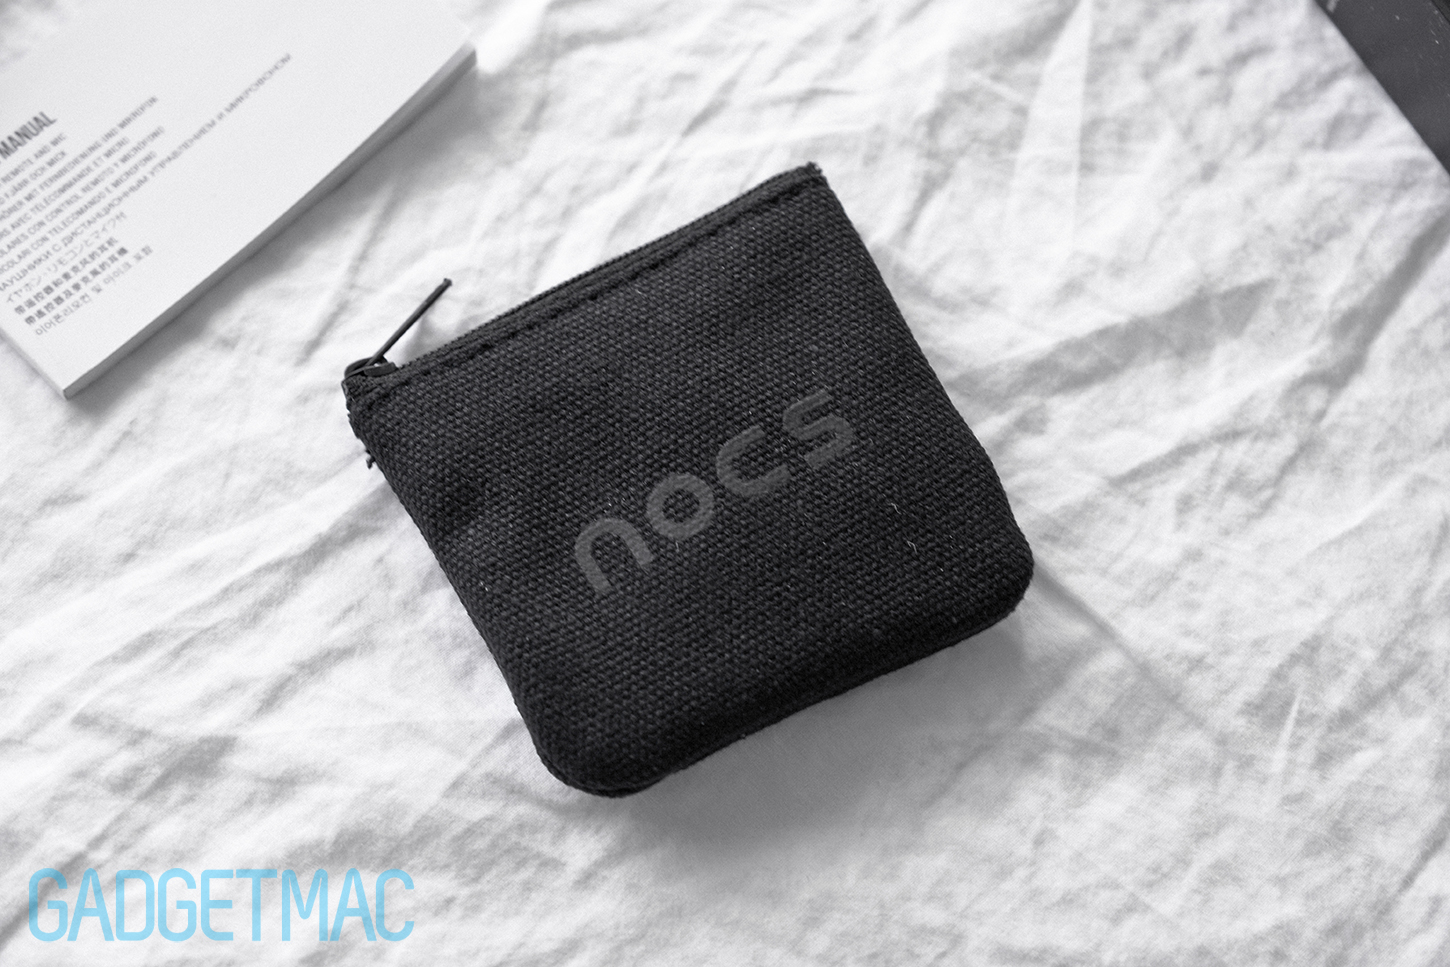 nocs-ns500-aluminum-included-carry-pouch.jpg